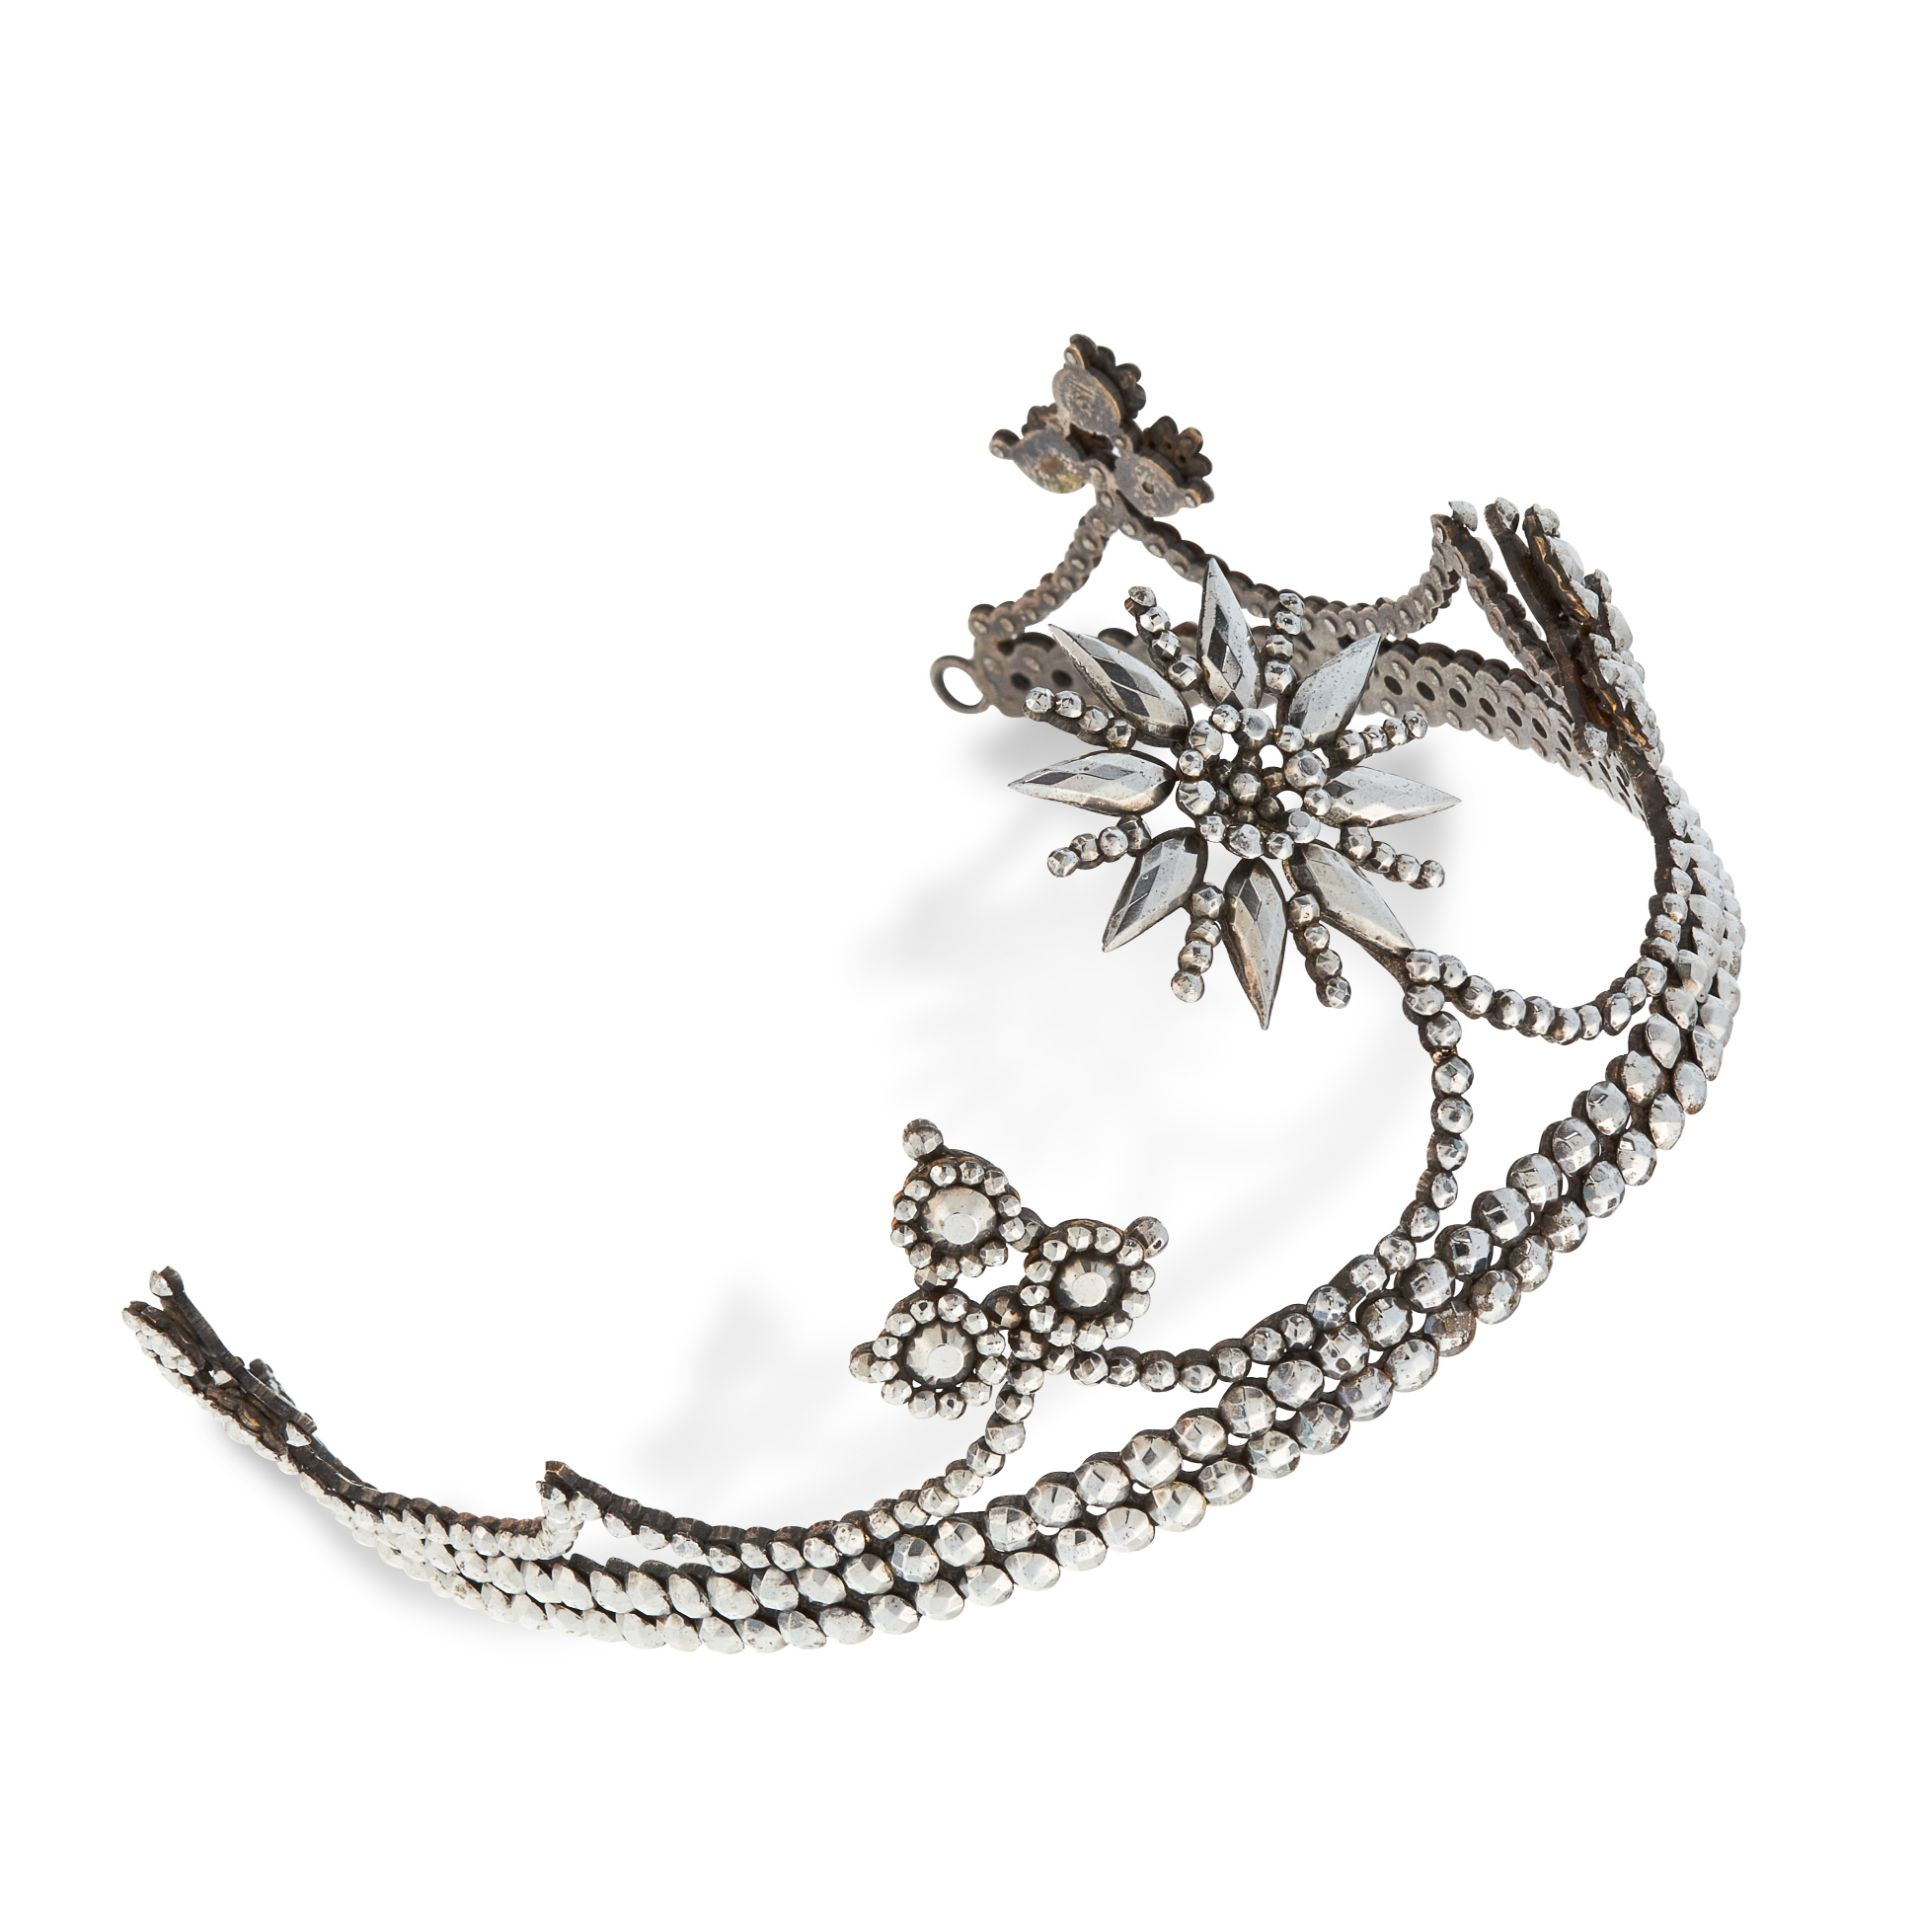 A CUT STEEL TIARA / HAIRPIECE, EARLY 20TH CENTURY the body with star and trefoil motifs, jewelled - Bild 2 aus 2